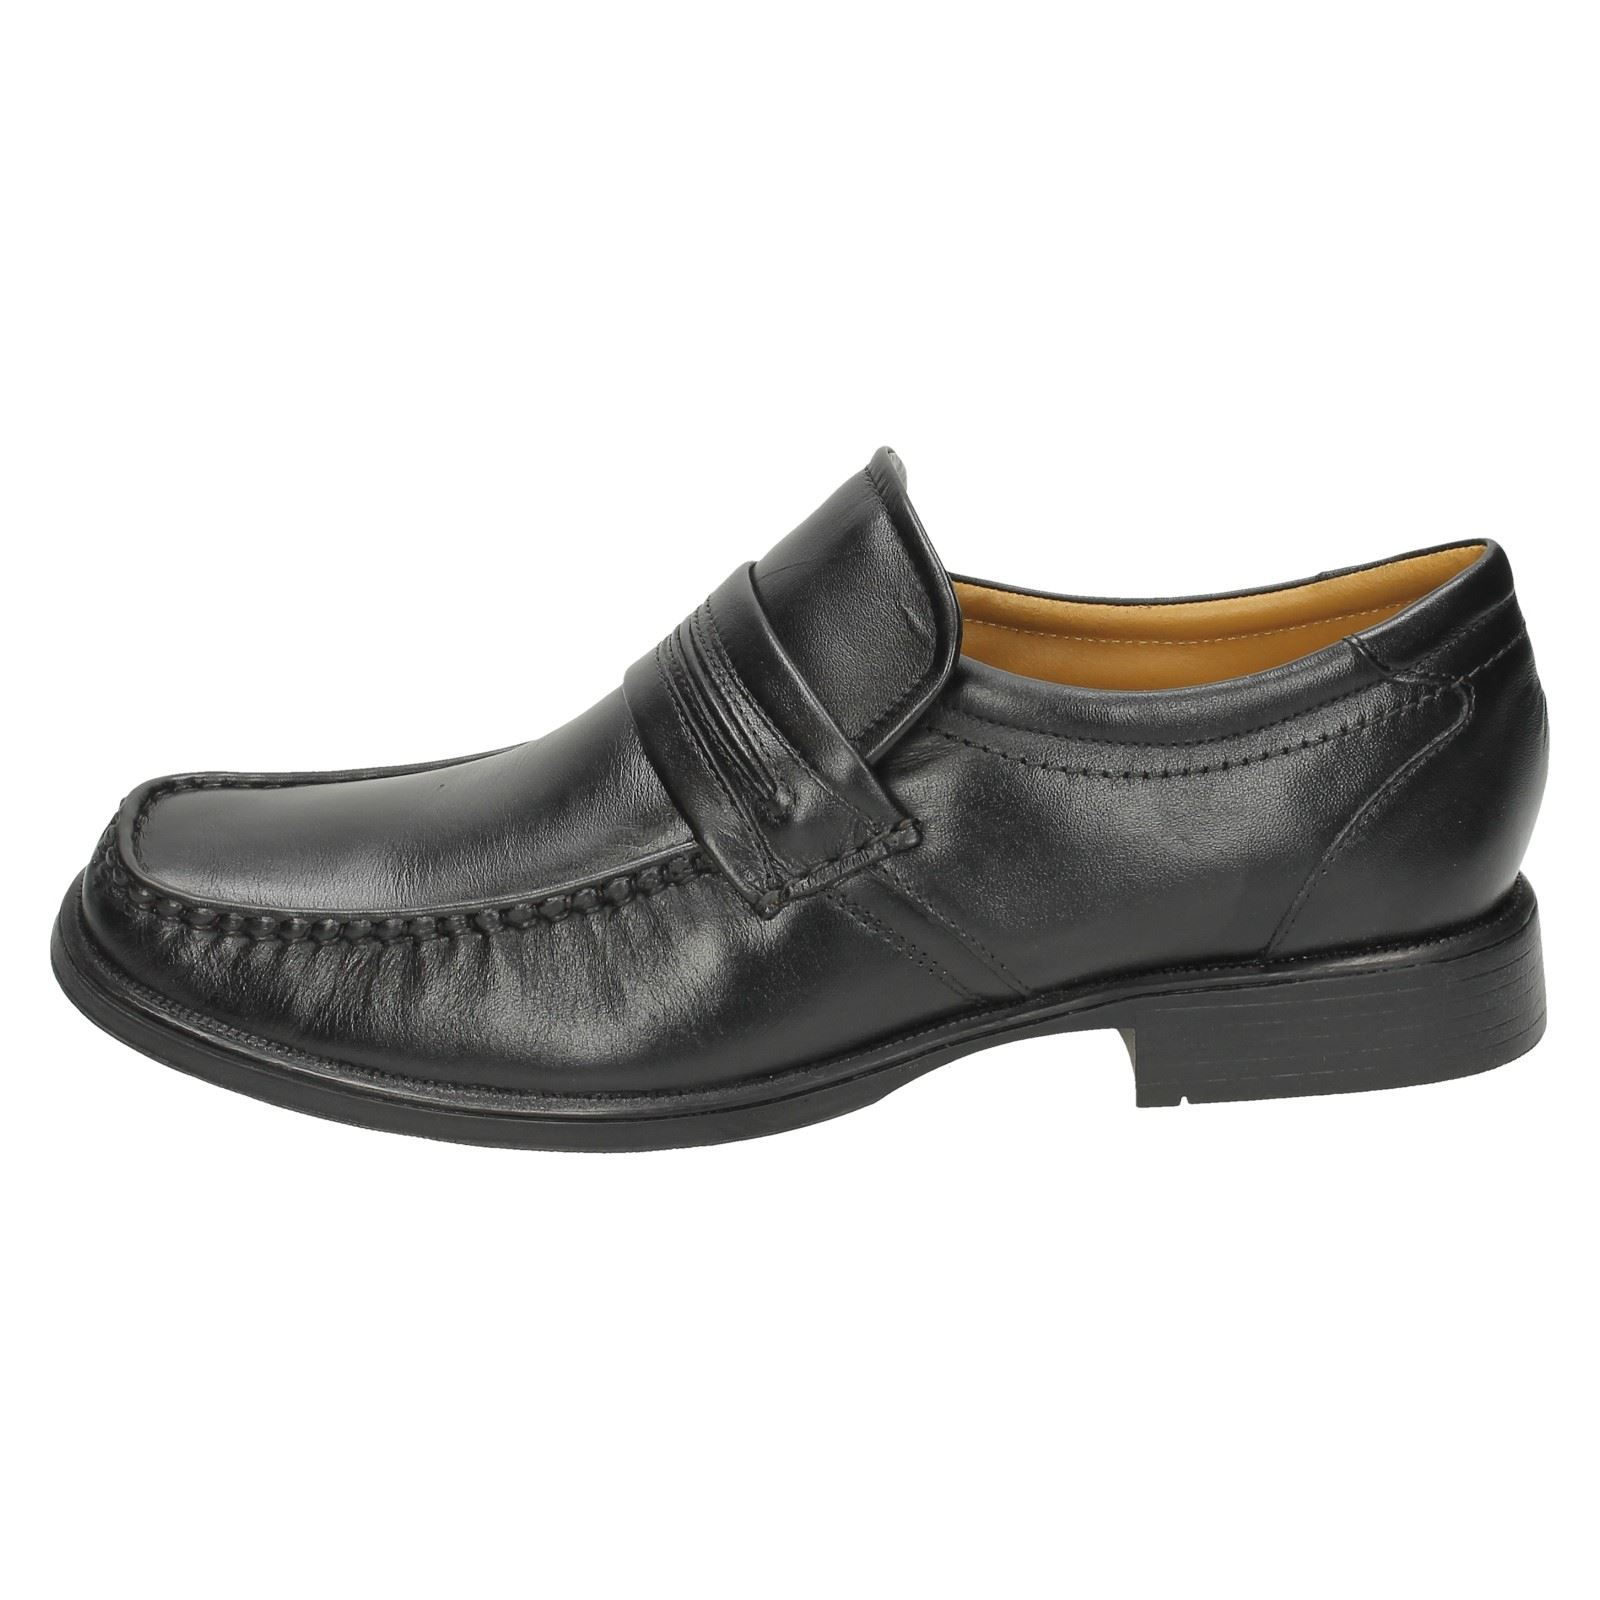 nero Shoes Maniglia lavoro Formal Mens Clarks On Slip 1B7wq0